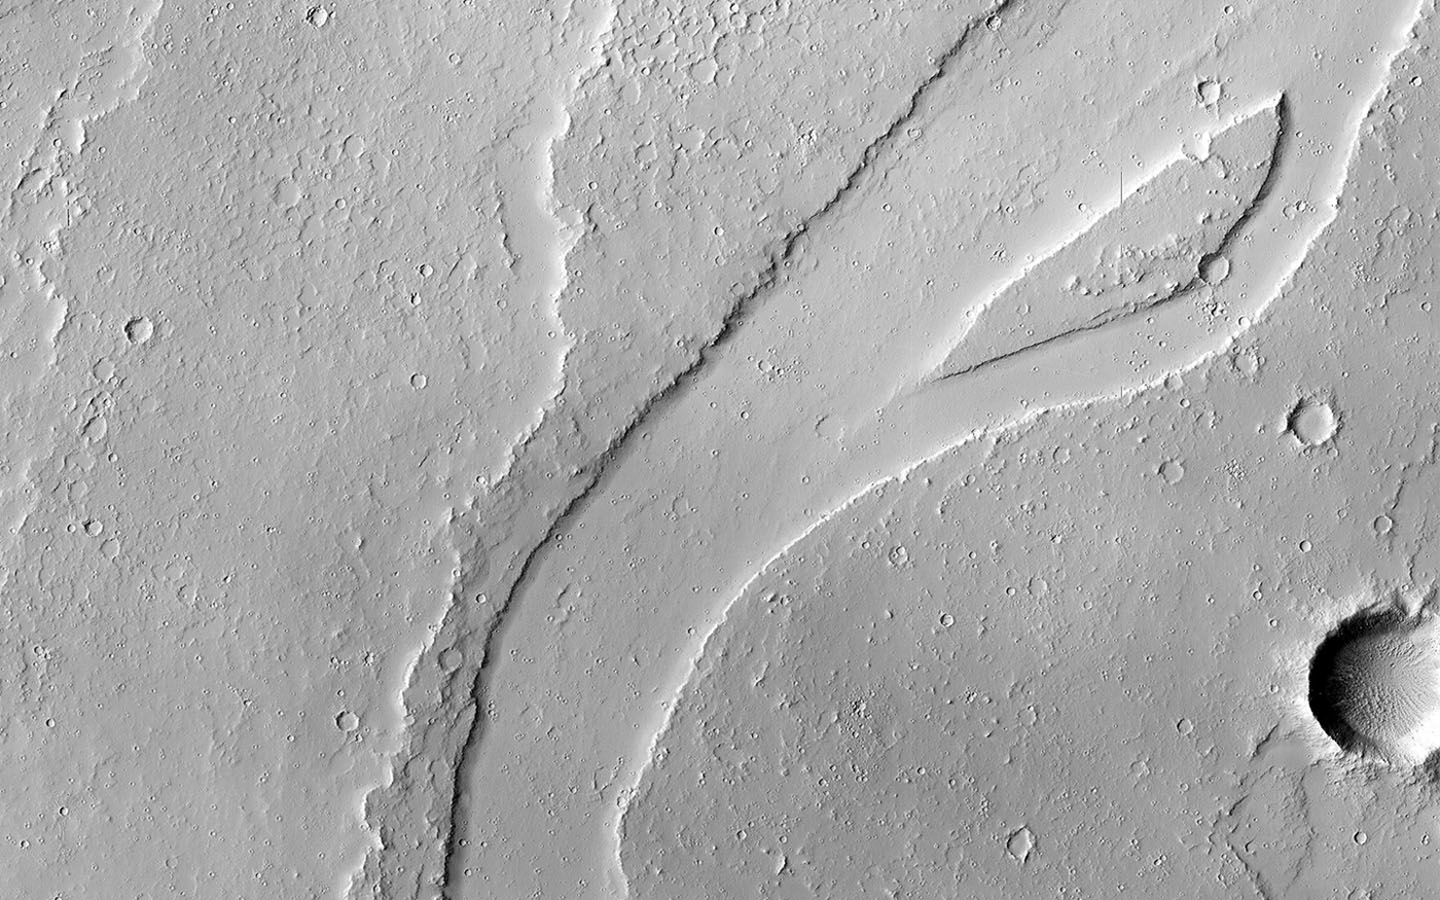 The Tharsis region of Mars is covered in vast lava flows, many with channels, as seen by NASA's Mars Reconnaissance Orbiter. Some channels, however, resemble features that may have been formed by water.